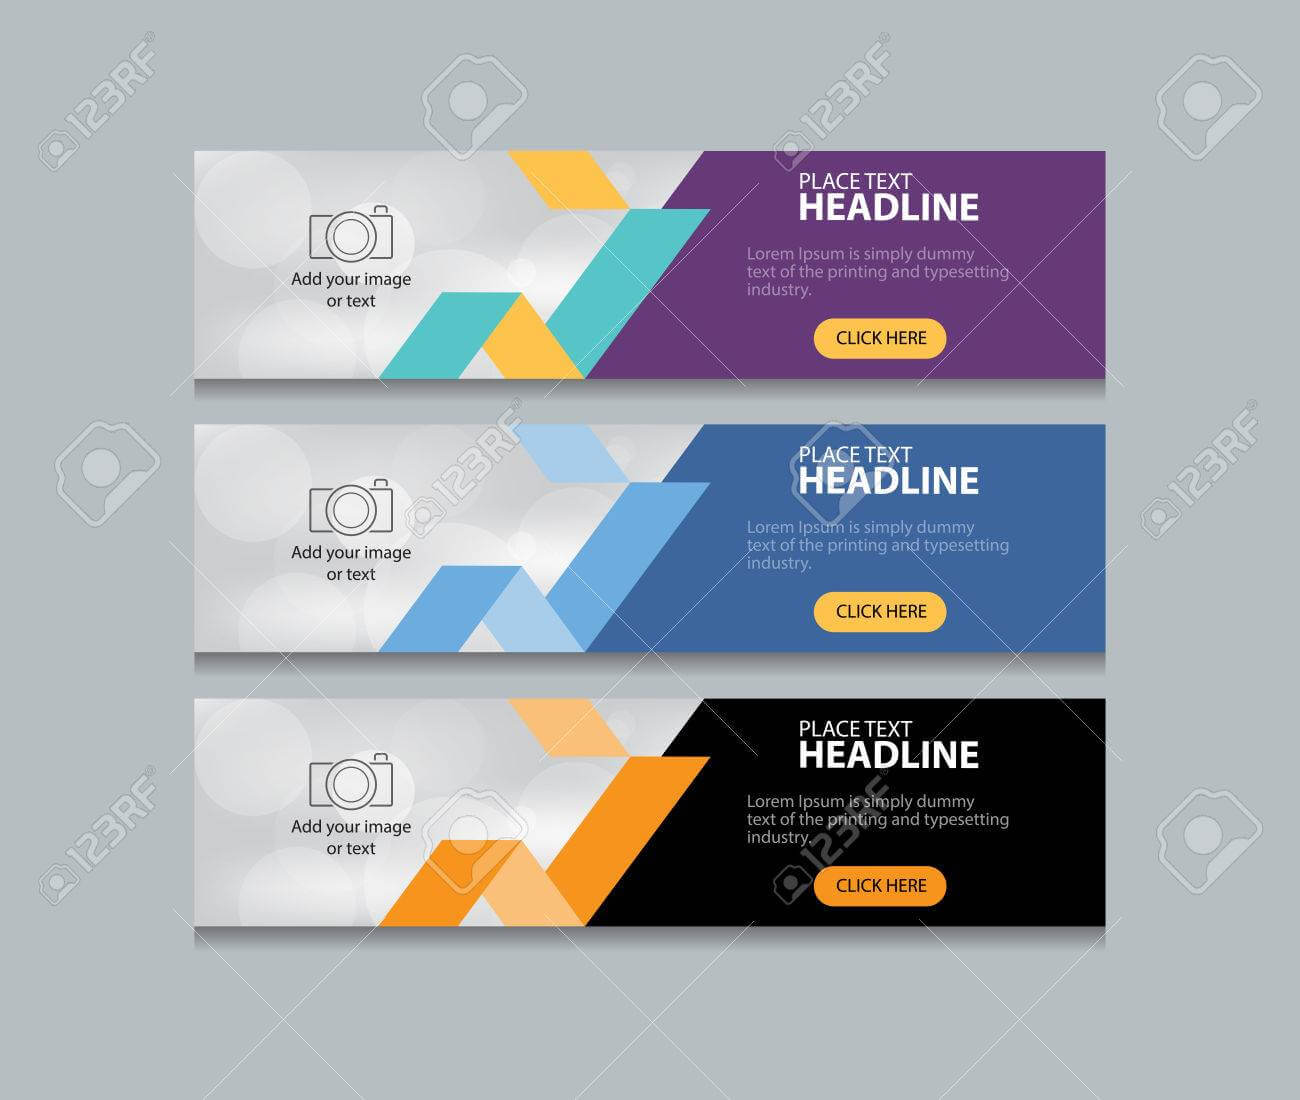 Abstract Web Banner Design Template Background With Regard To Website Banner Design Templates